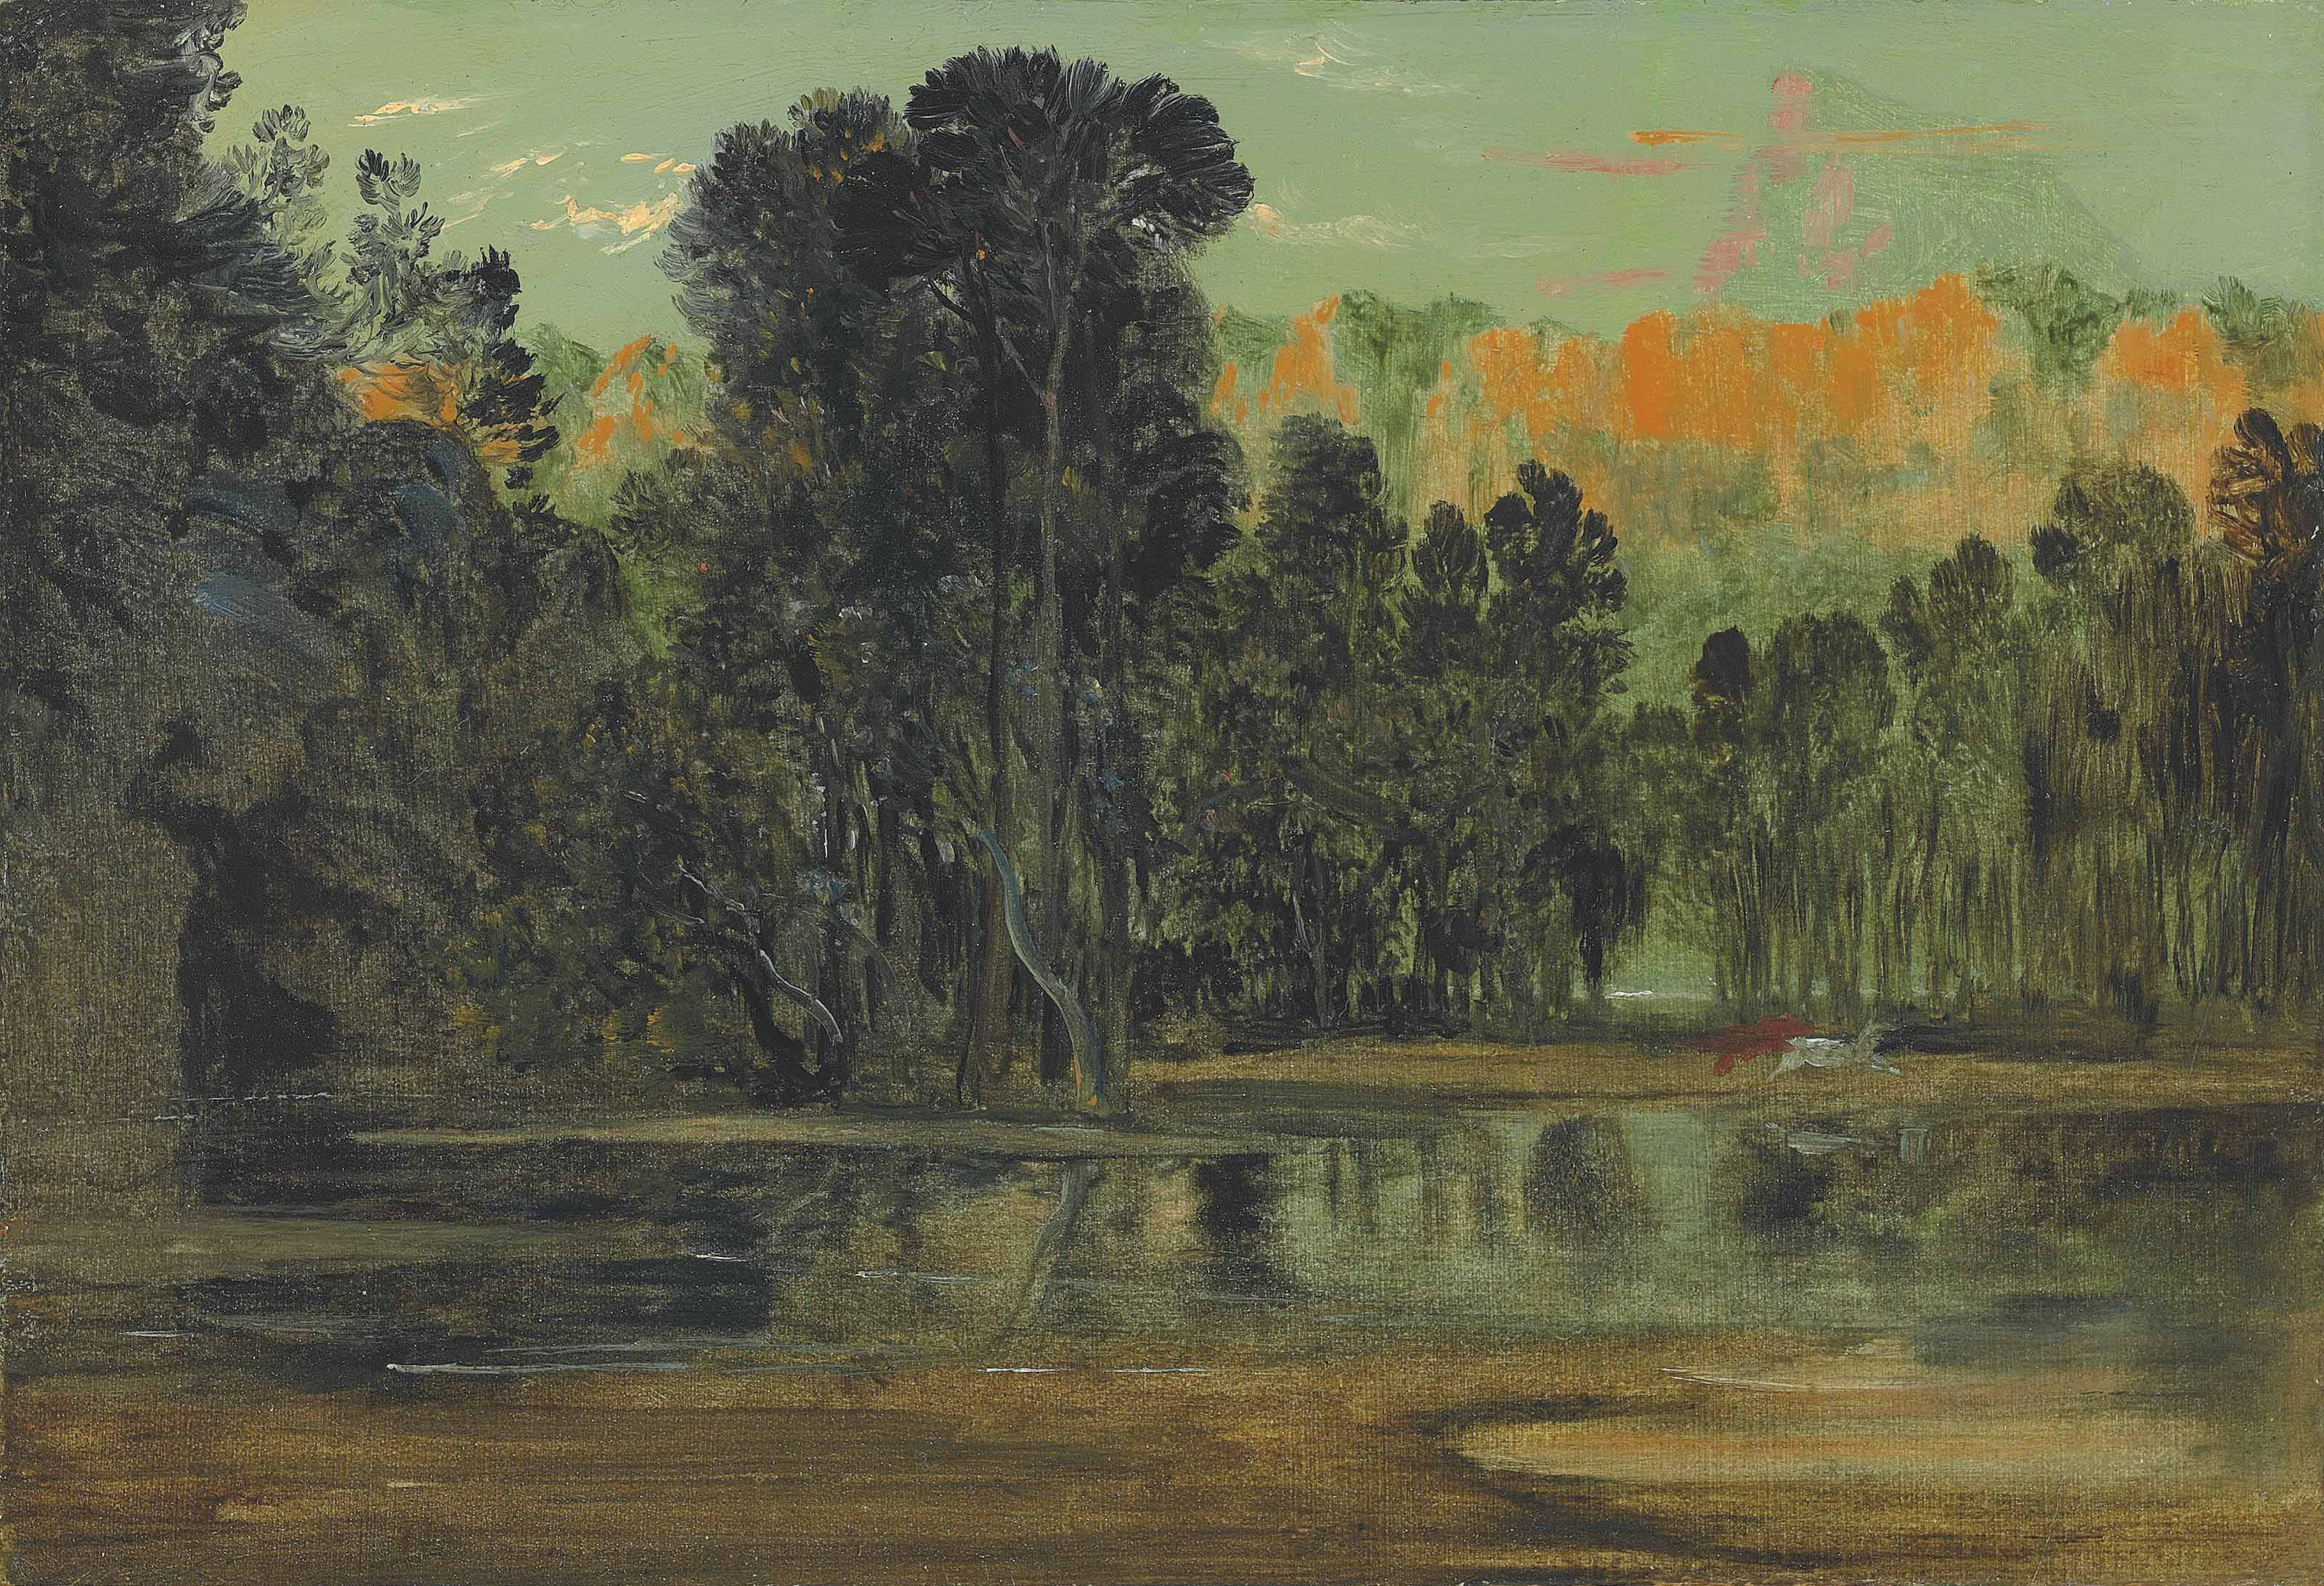 A wooded landscape at sunset